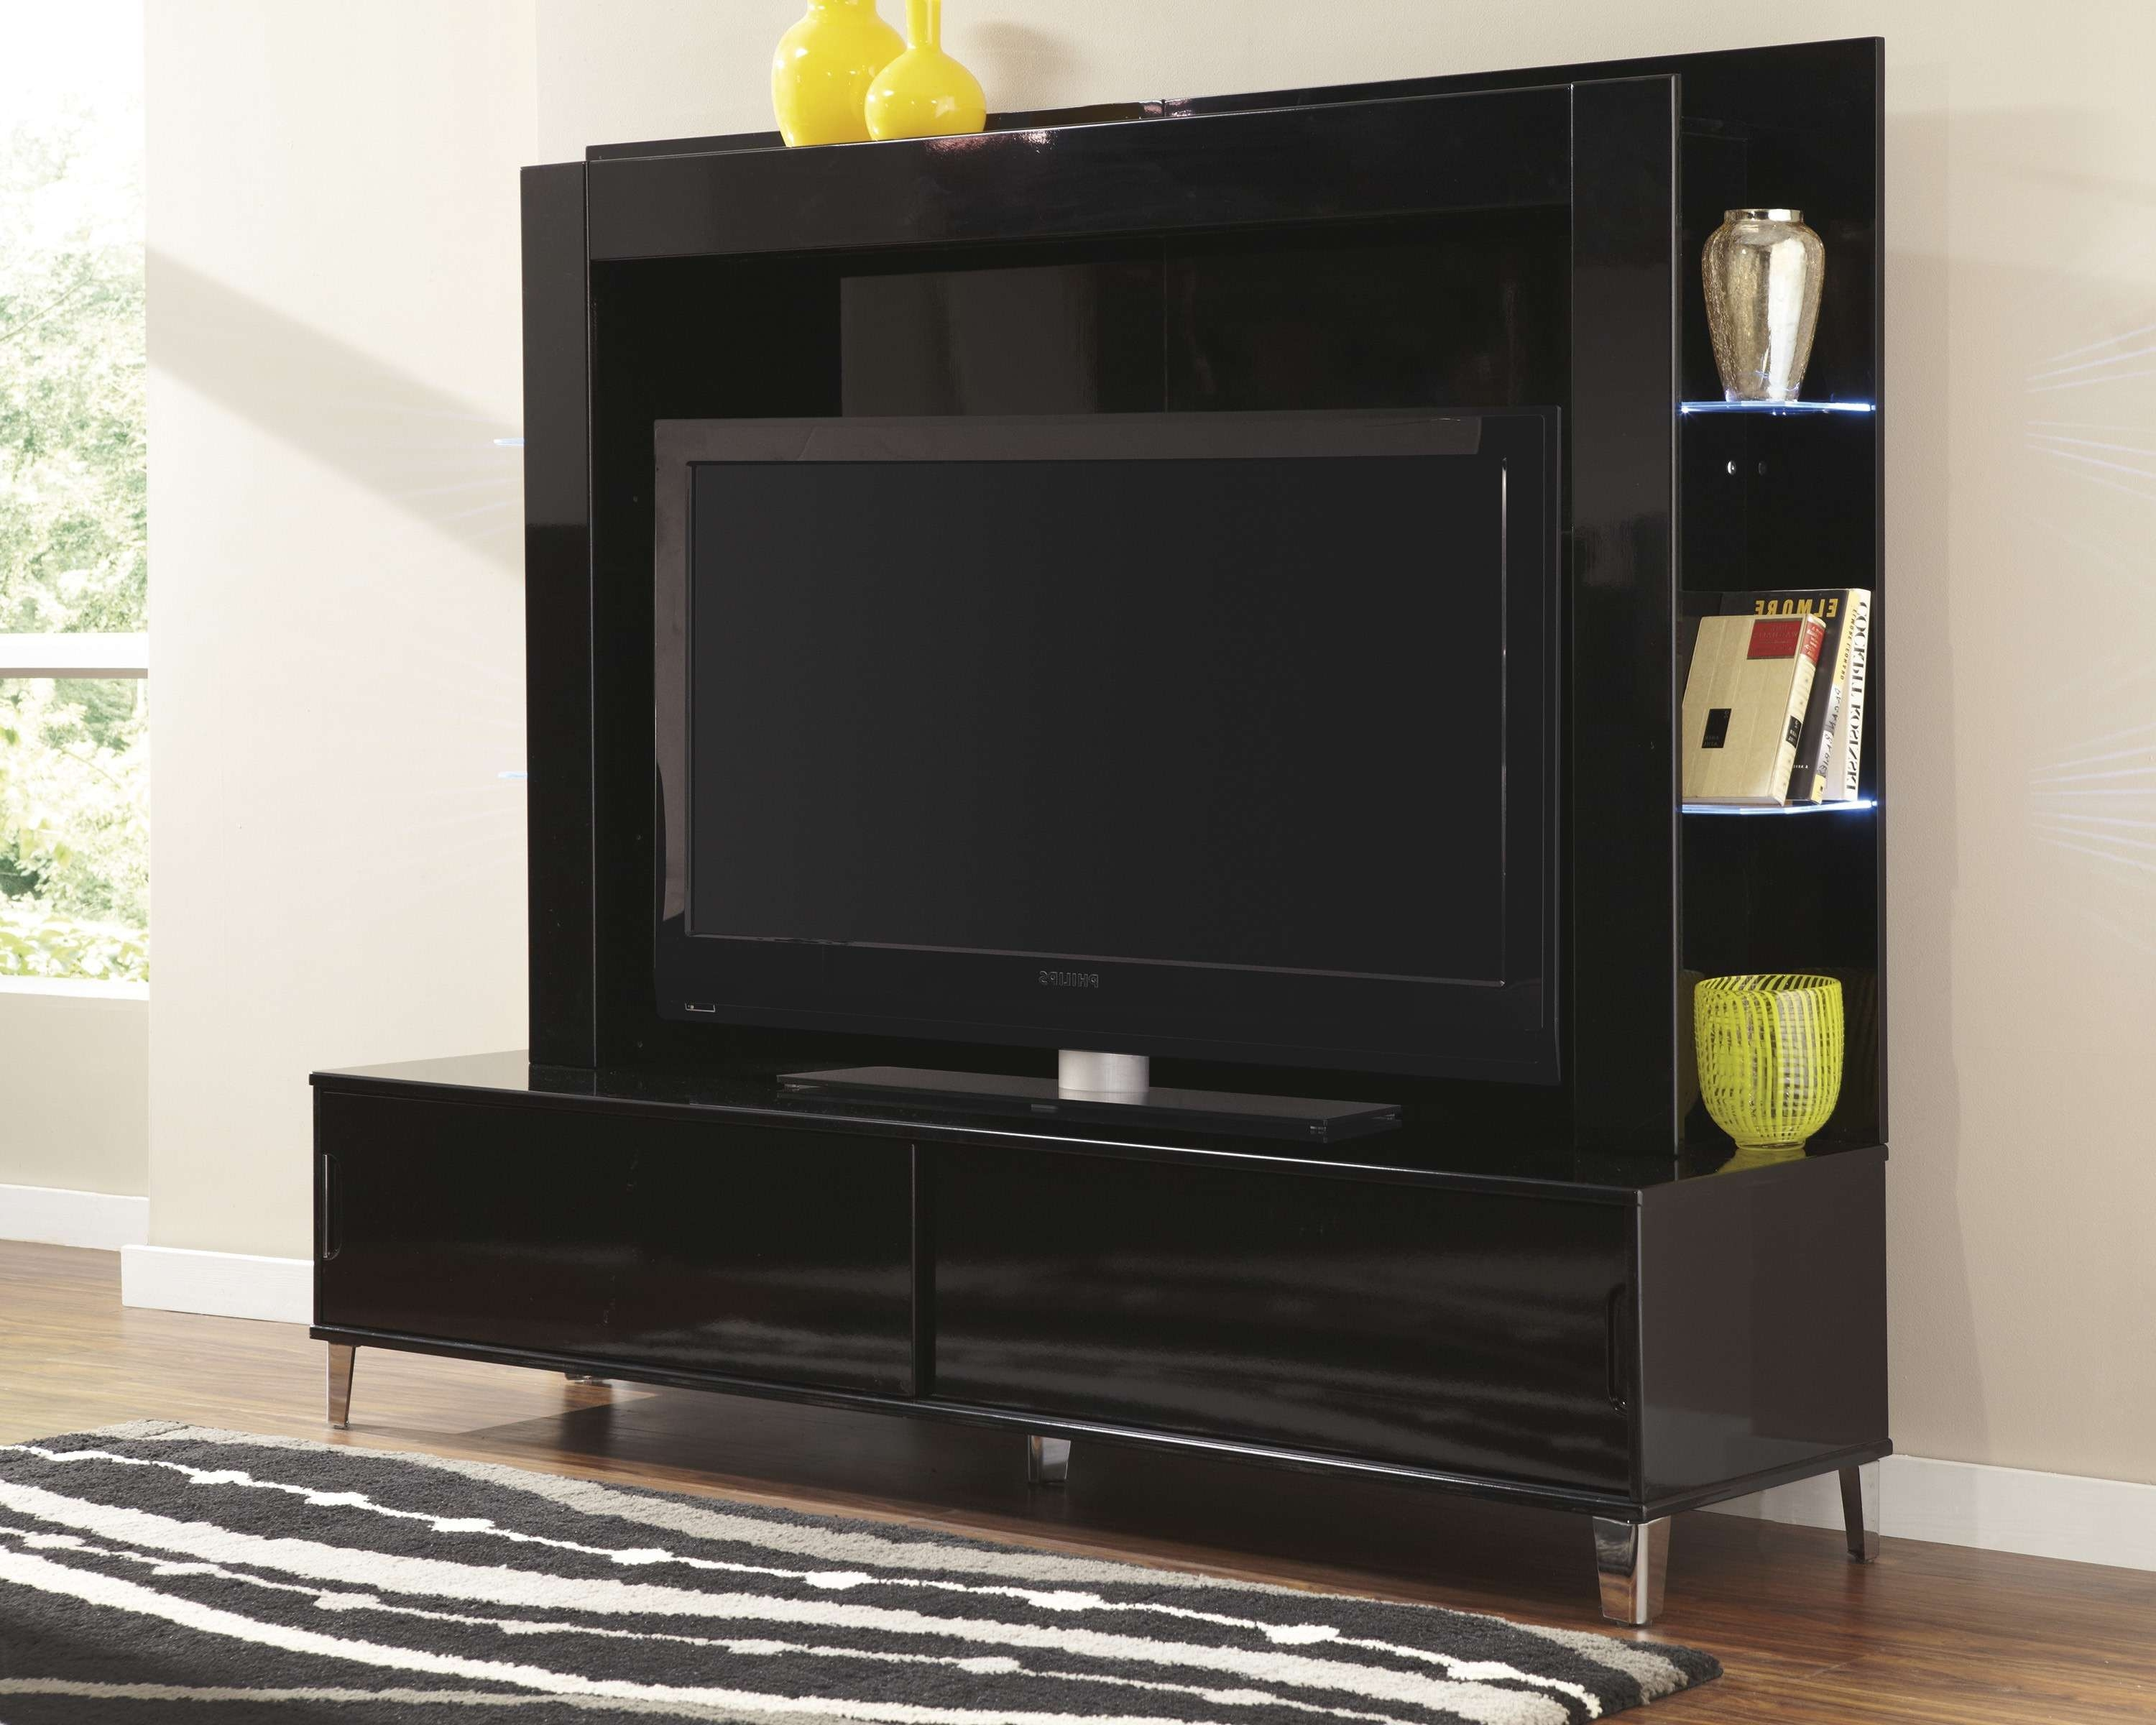 Double Bowl Carpet In Flat Screens Screen Tv Mount Stand Cream Throughout Contemporary Tv Cabinets For Flat Screens (View 11 of 20)